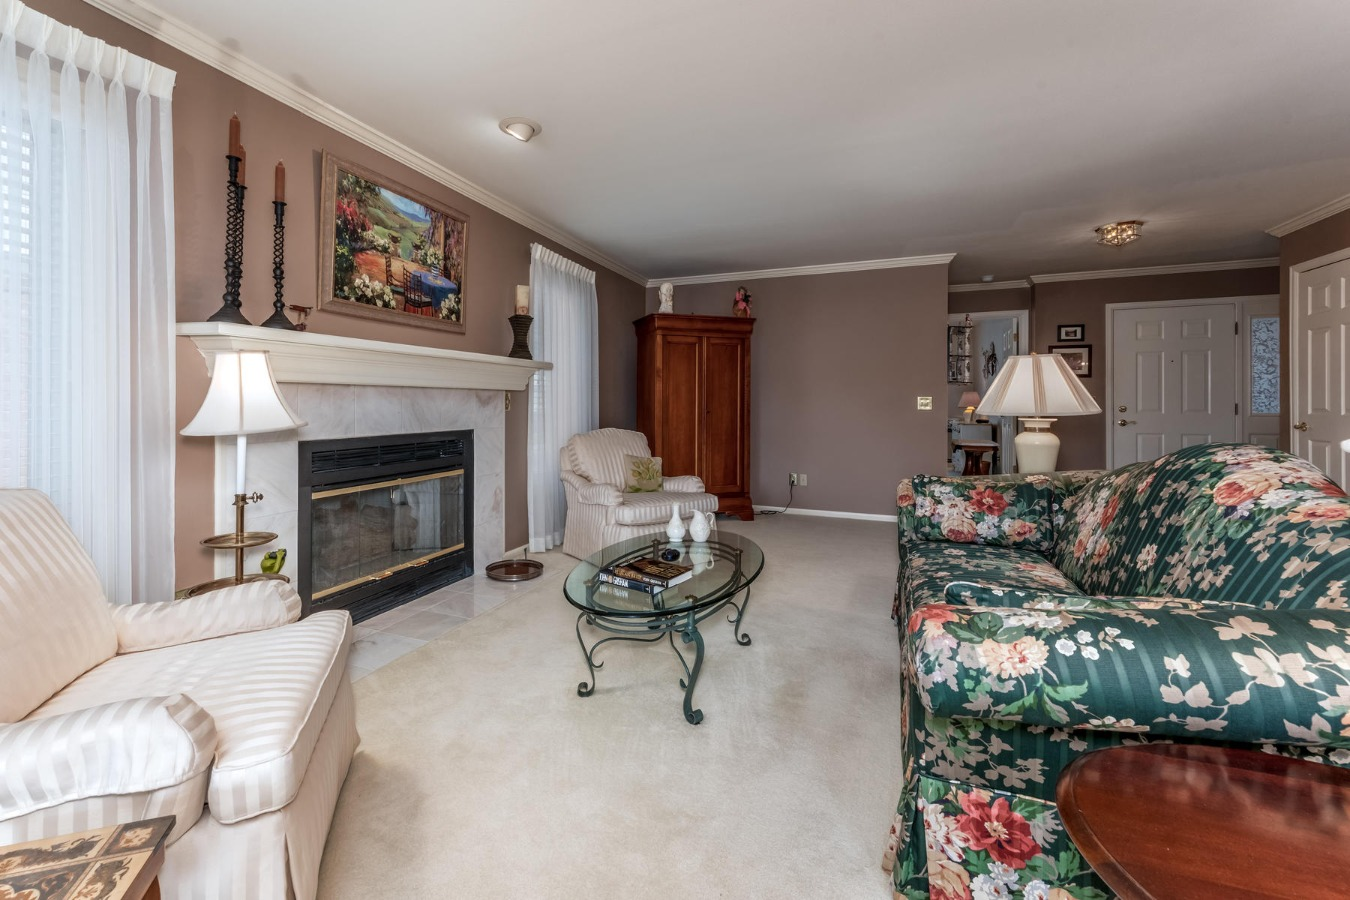 Gas Fireplace & Crown Molding in Large Living Room